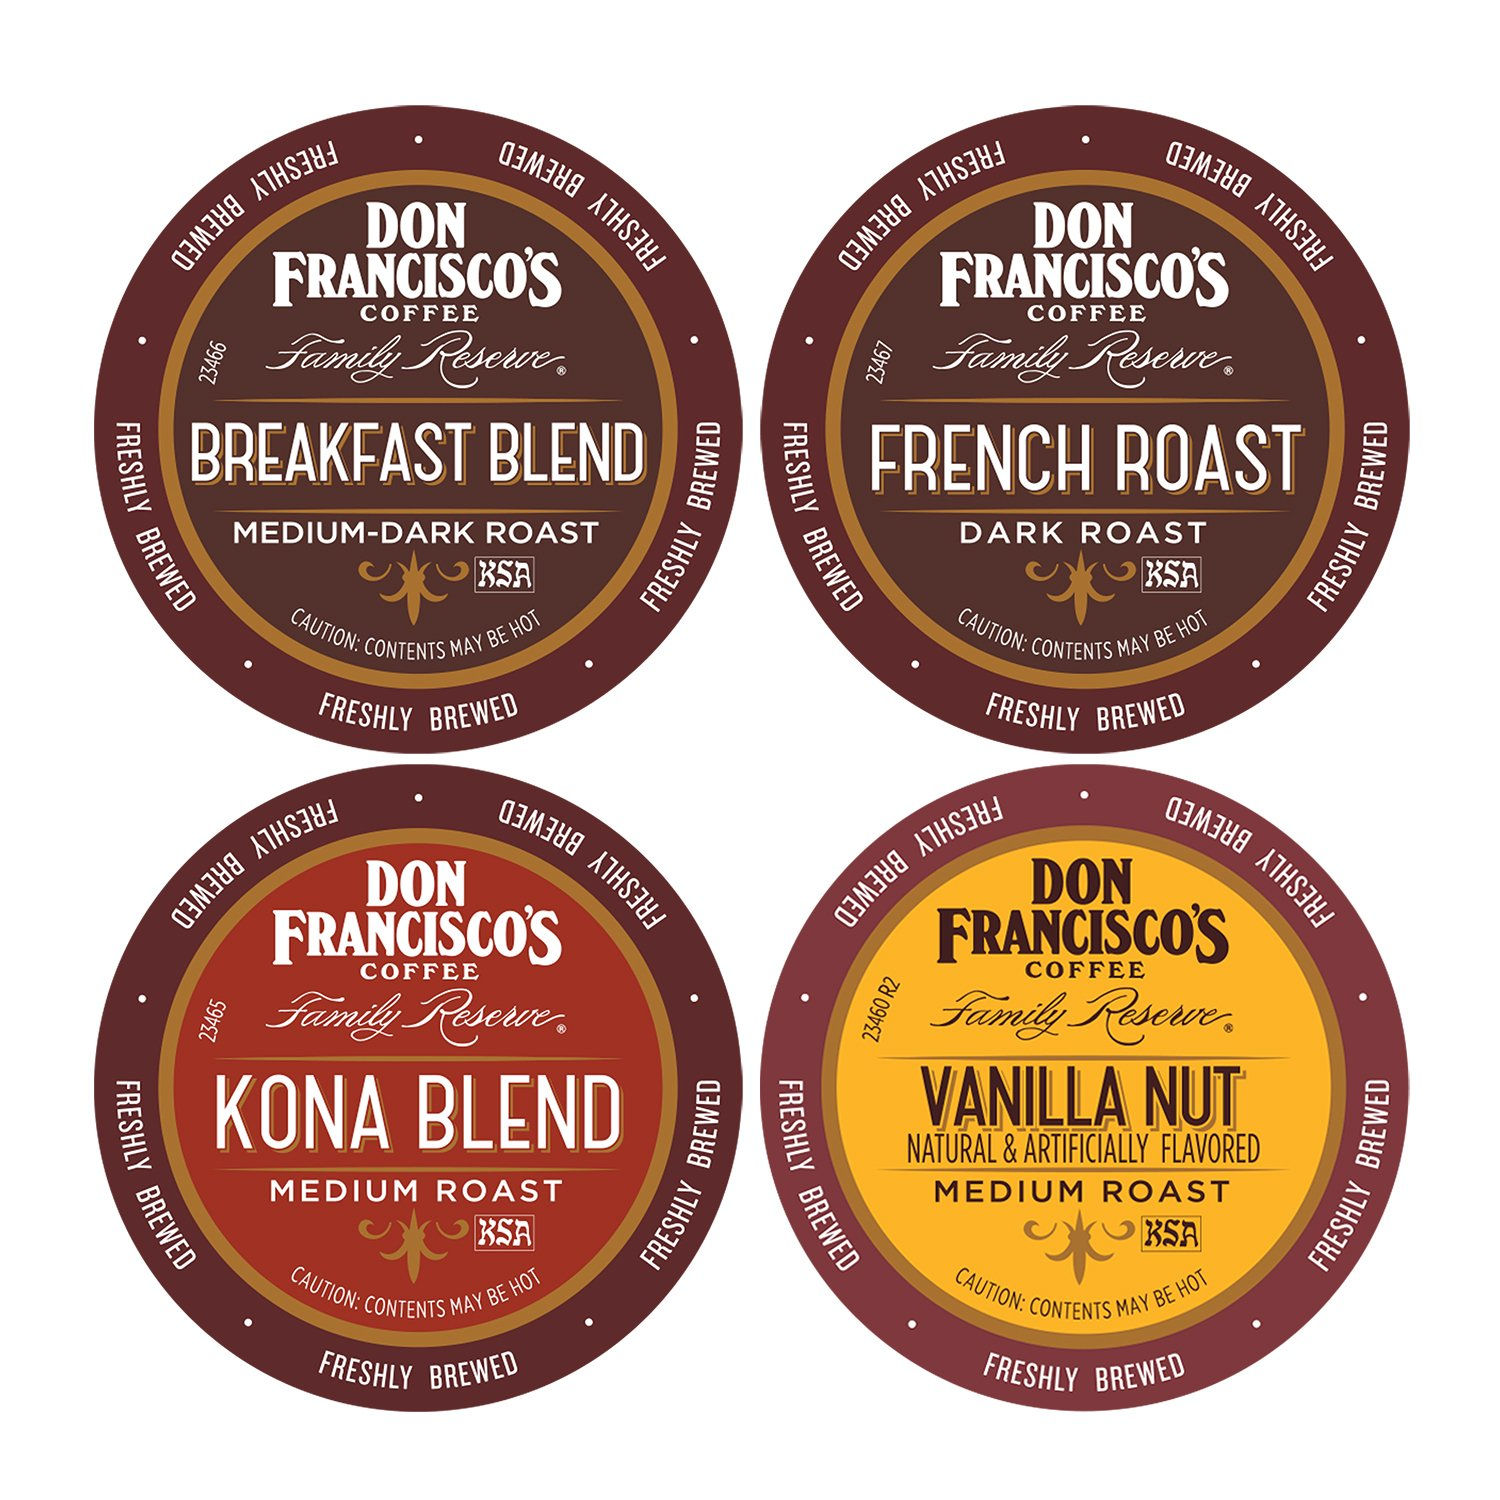 Don Francisco's Variety Pack (Breakfast Blend, French Roast, Kona Blend, and Vanilla Nut), Premium 100% Arabica Coffee Beans, Single-Serve Pods for Keurig, Family Reserve, 4X12 Count (48 Total)